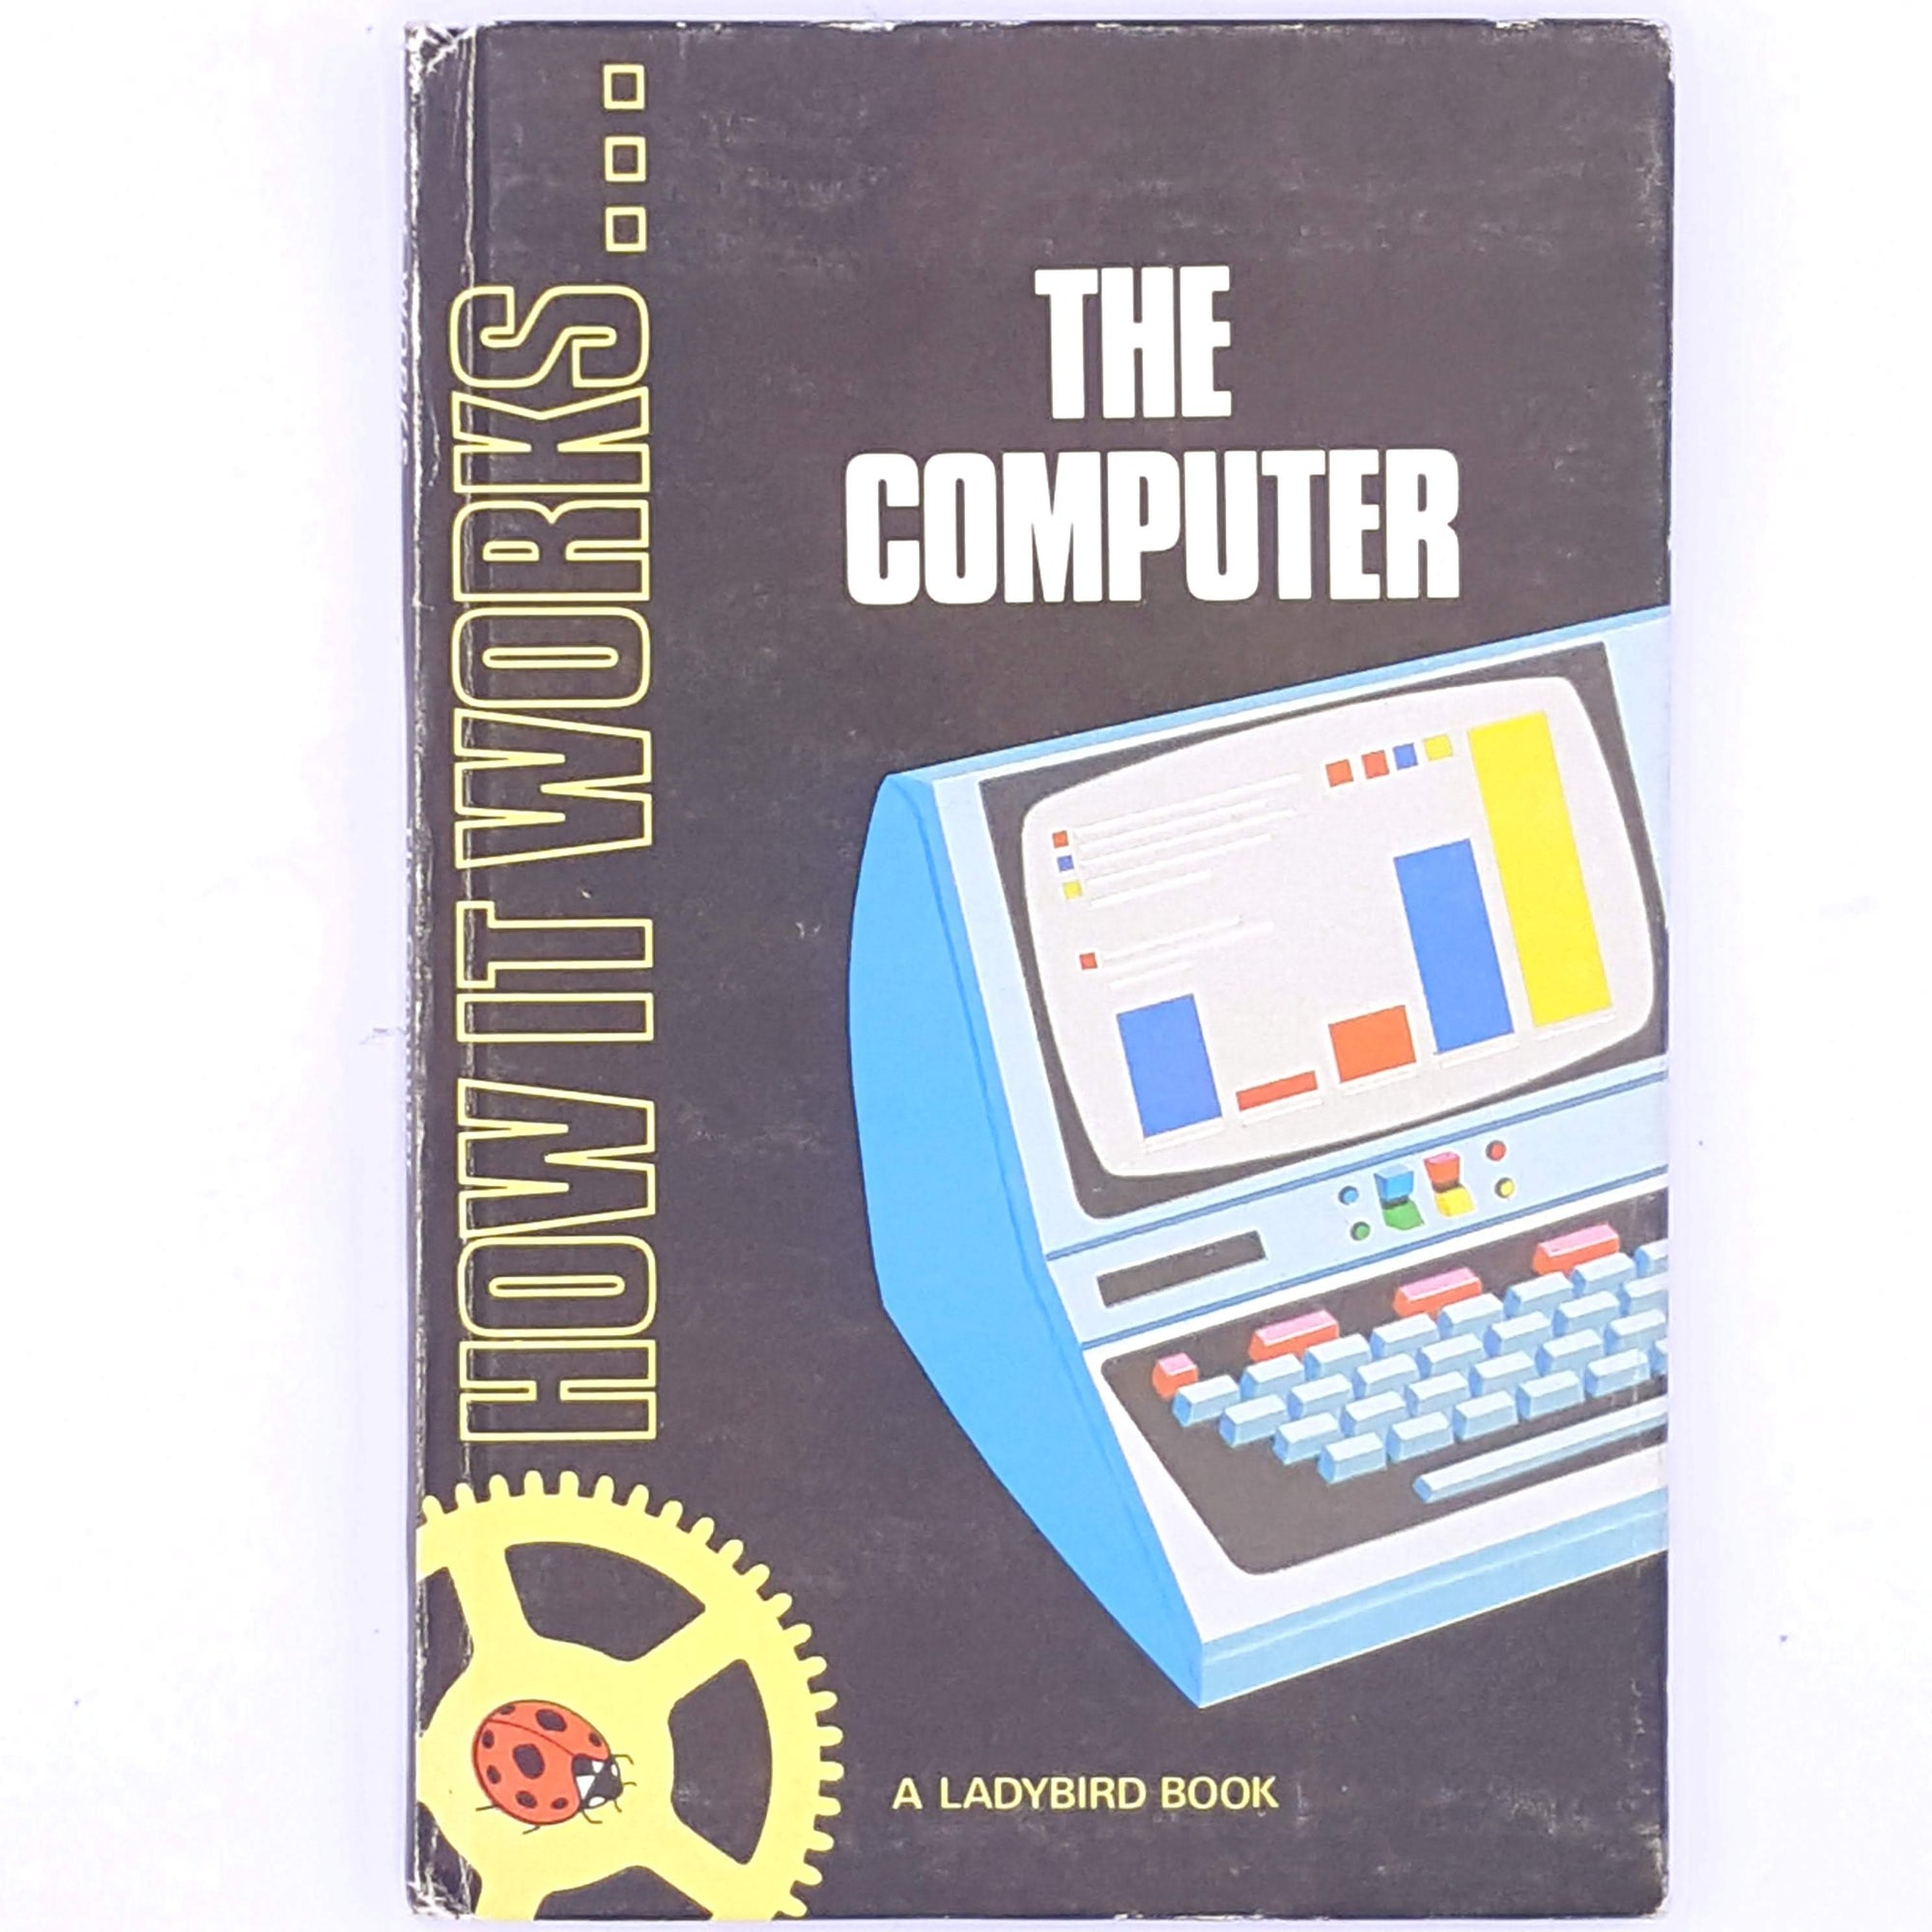 christmas-gifts-antique-technology-thrift-ladybird-sport-country-house-library-computer-vintage-classic-old-how-it-works-the-computer-for-him-decorative-books-patterned-